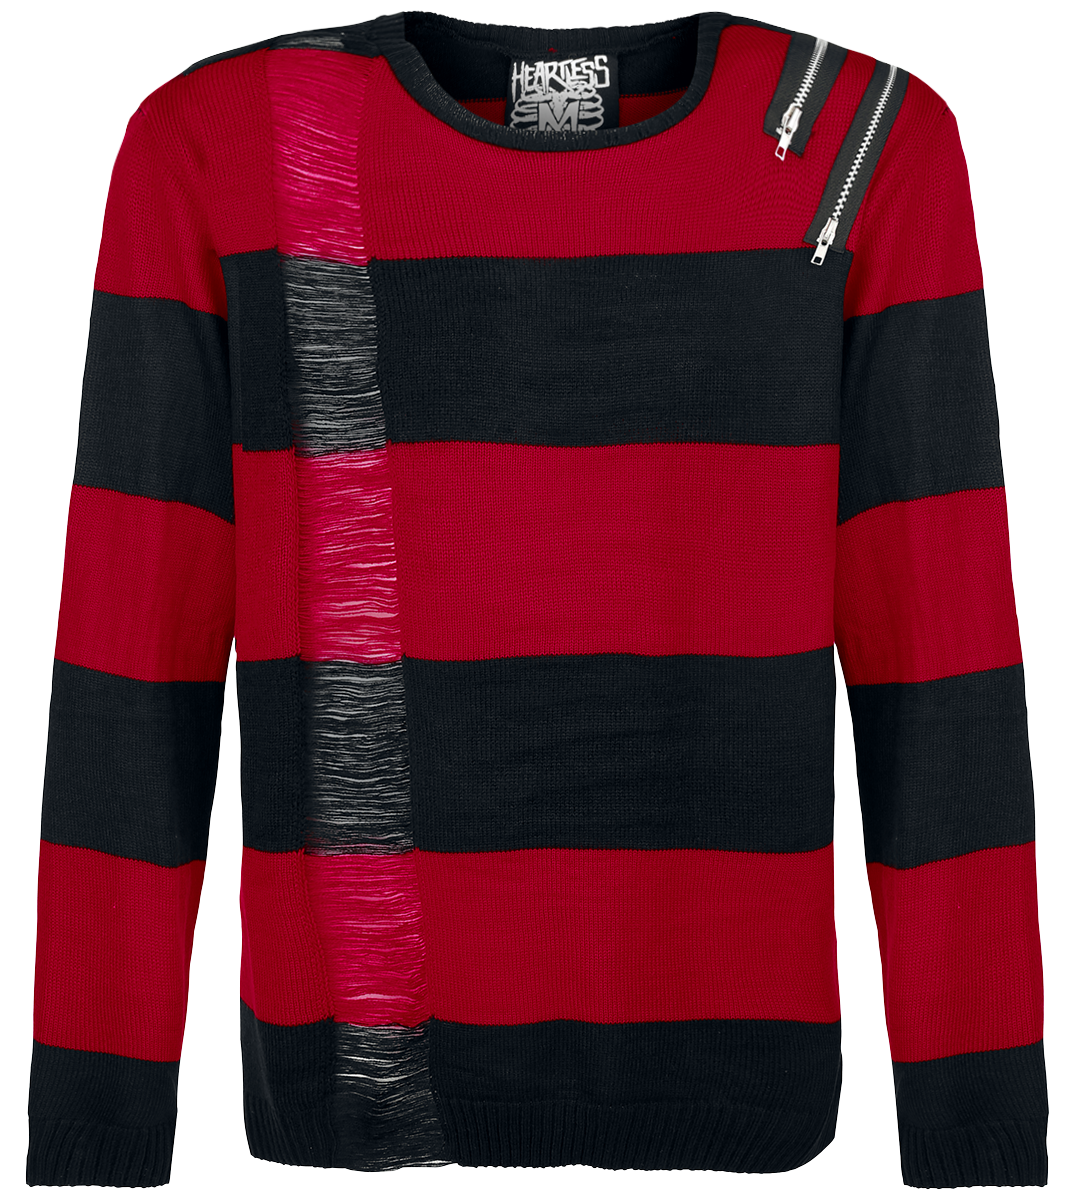 Heartless - Drop Dead - Knit sweater - black-red image